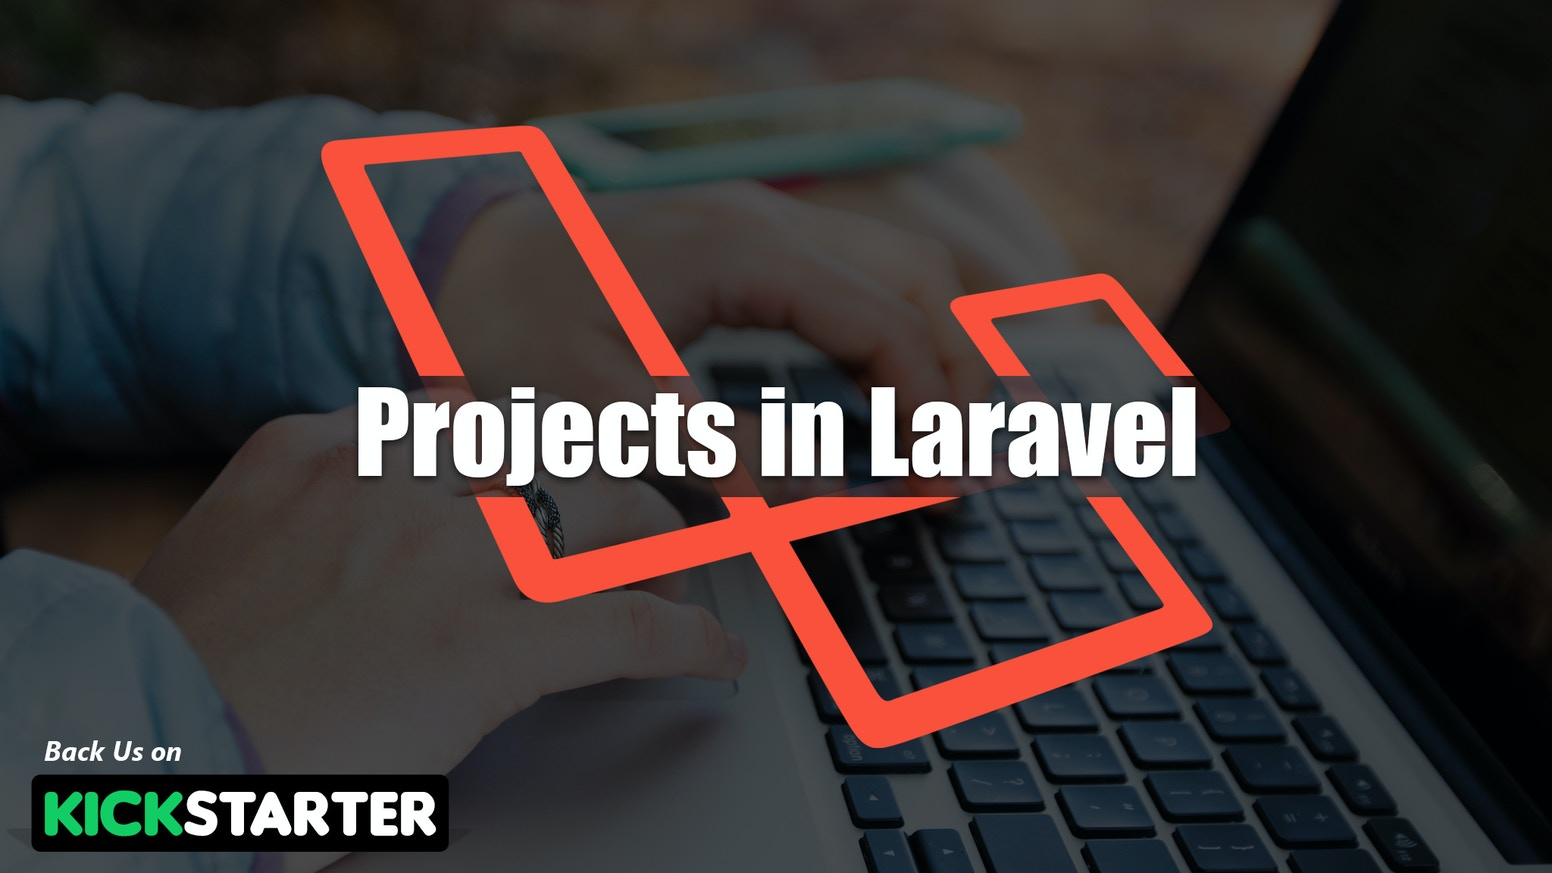 Projects in Laravel - Learn By Building 10 Real World Apps by